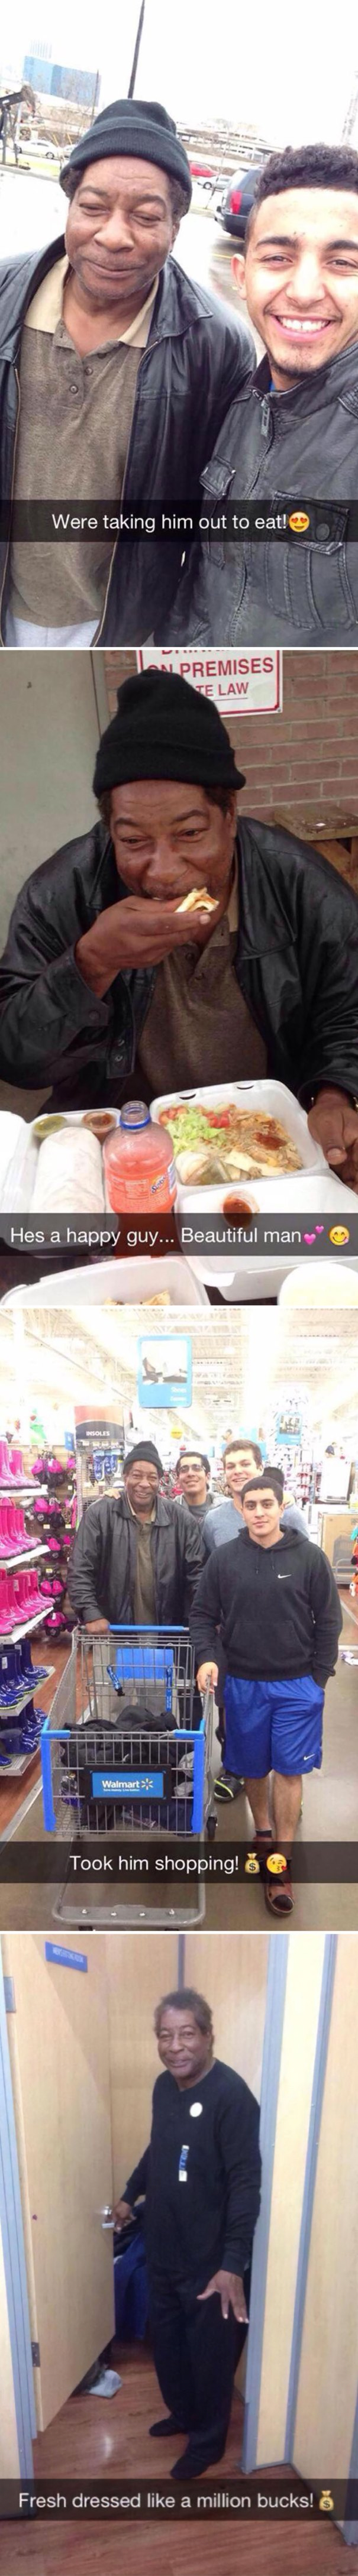 These Boys See This Homeless Man Everyday On Their Way To School So They Decided To Help Him Out